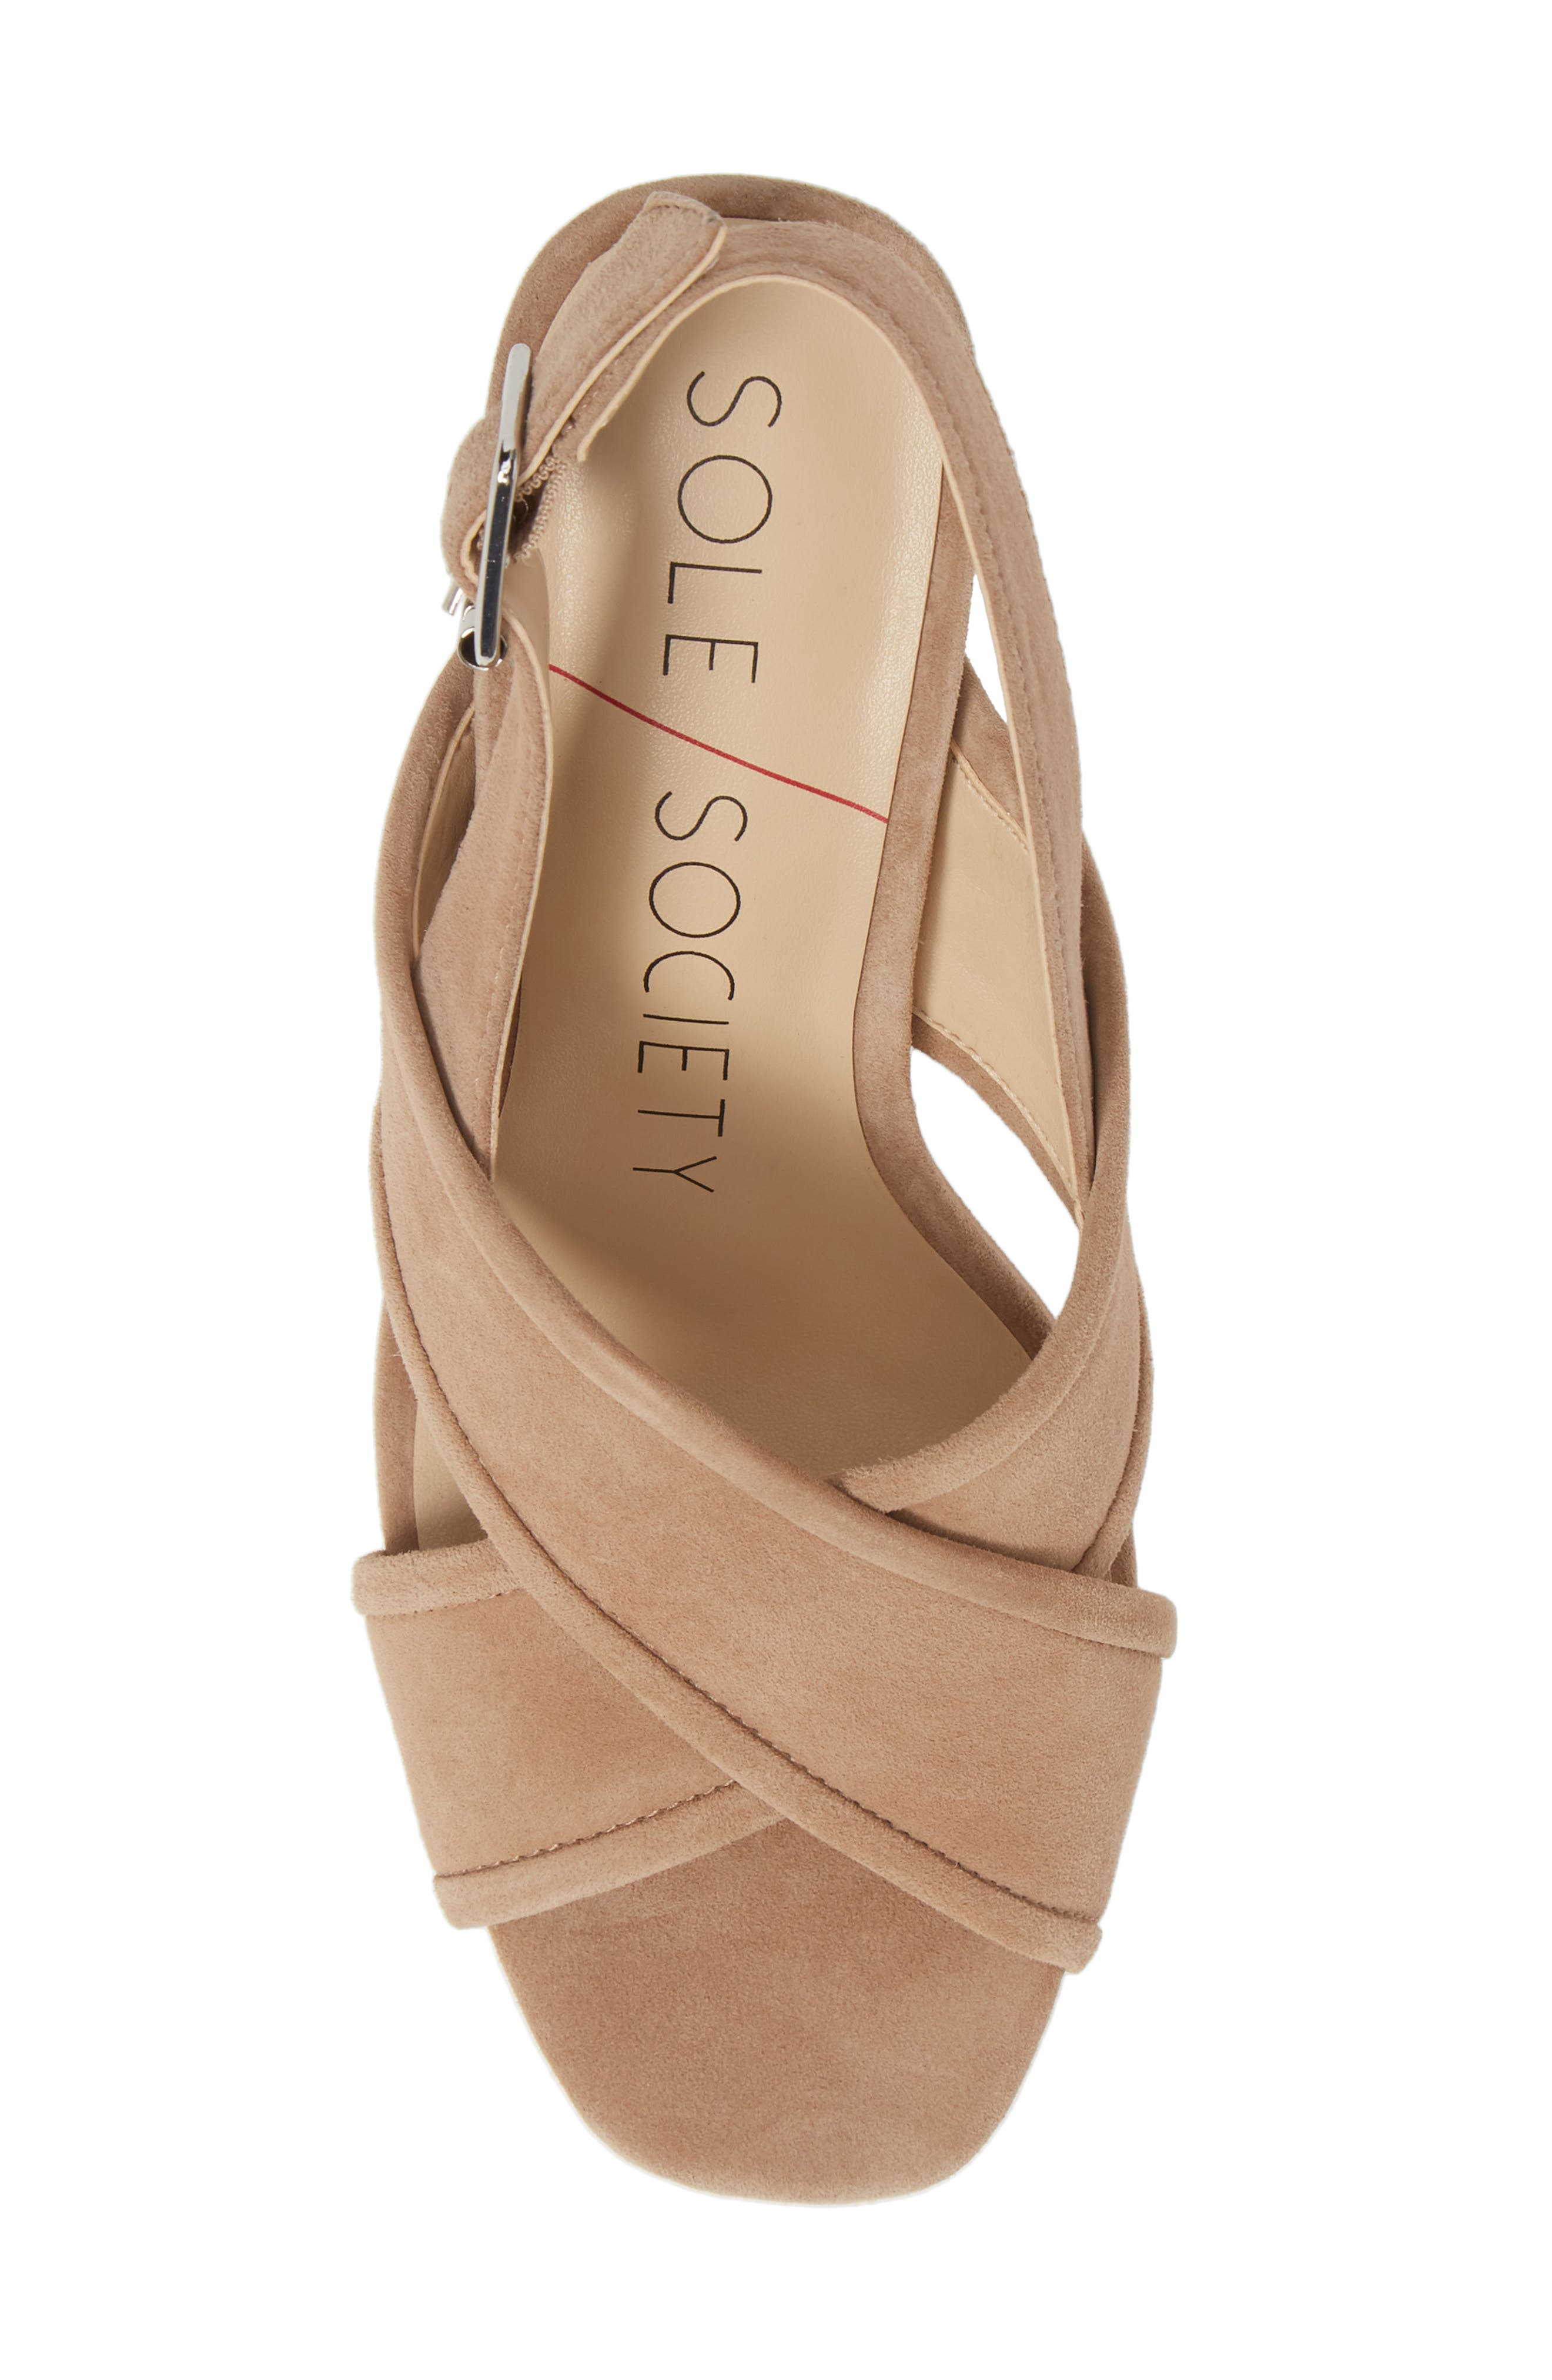 Joree Slingback Sandal,                             Alternate thumbnail 5, color,                             DUSTED TAUPE SUEDE